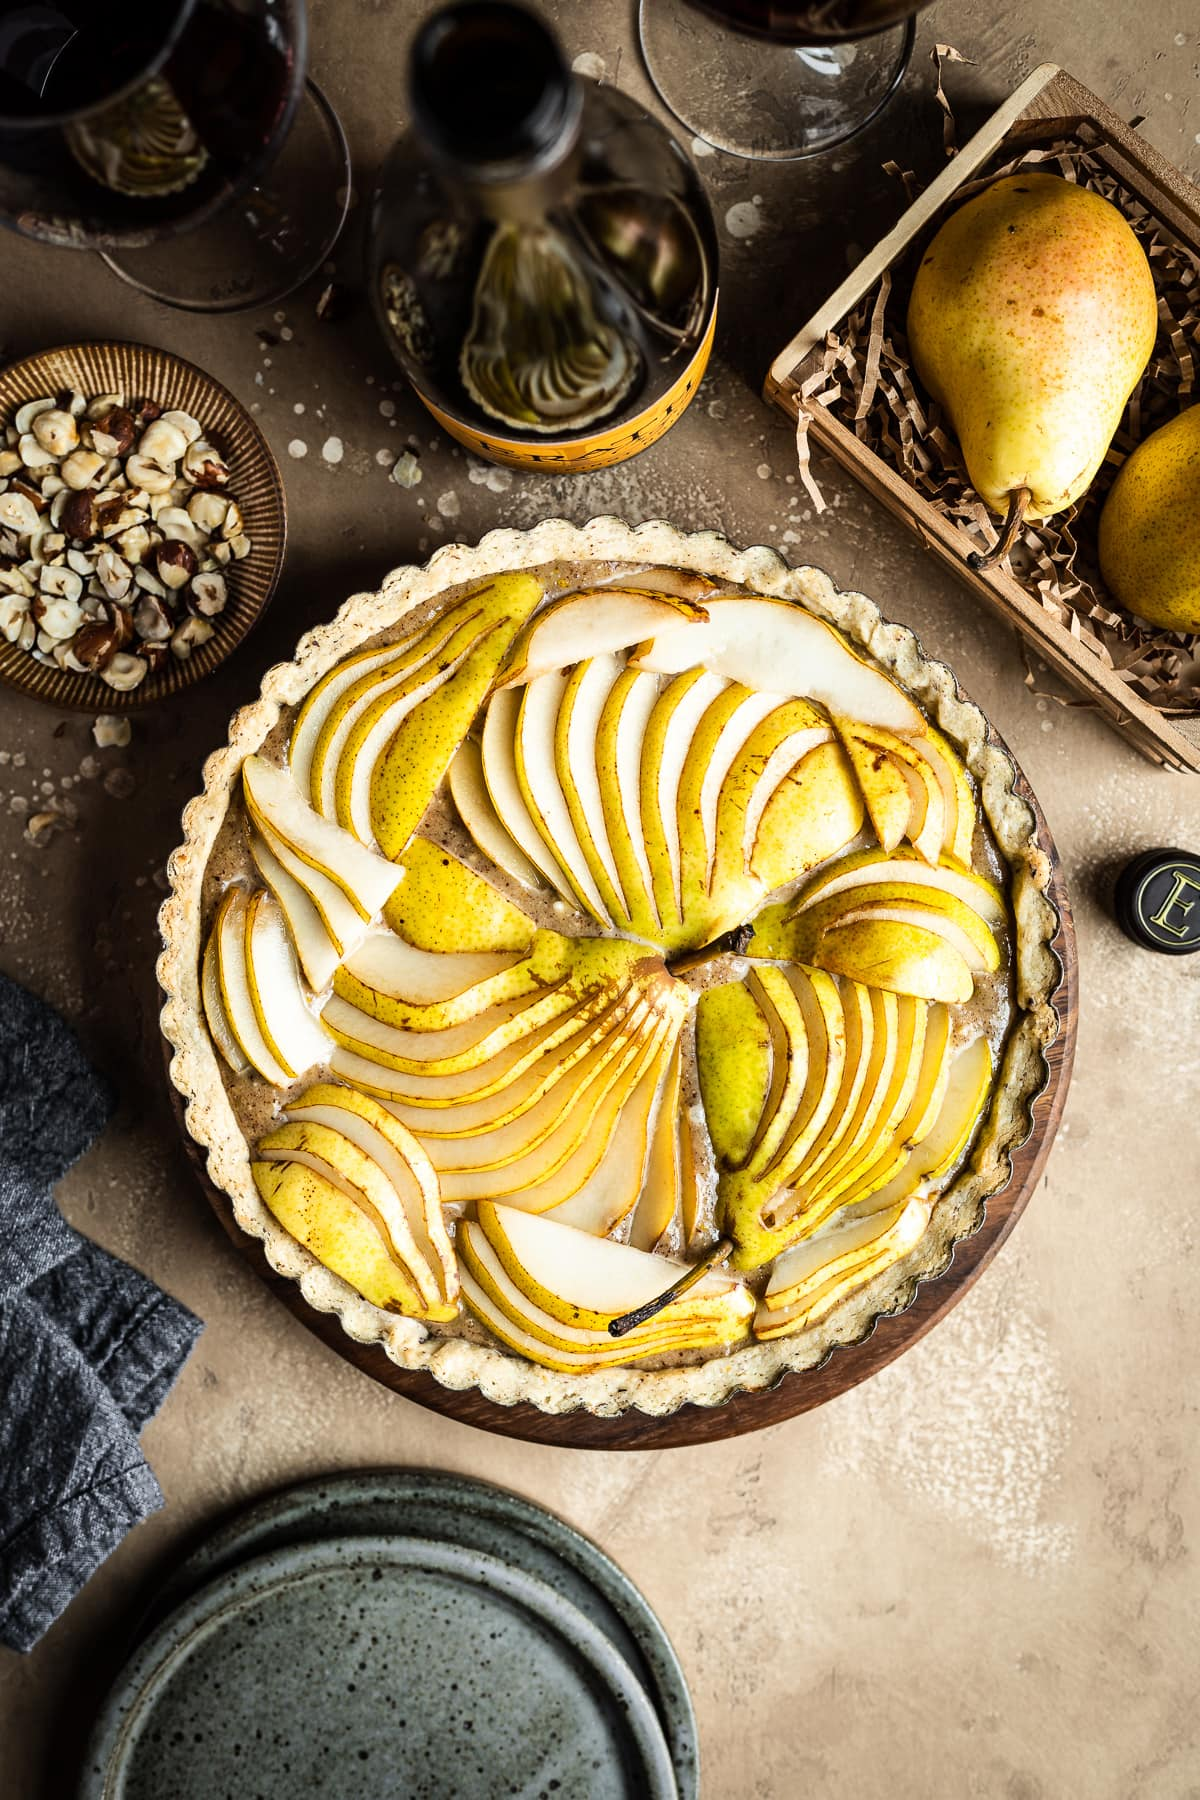 An unbaked pear hazelnut tart in a round pan is at the center of the image. Surrounding the tart are speckled blue ceramic plates, a bowl of chopped hazelnuts, pears in a wooden crate, a linen napkin, and a bottle of red wine with two filled wine glasses. Everything rests on a textured tan background.